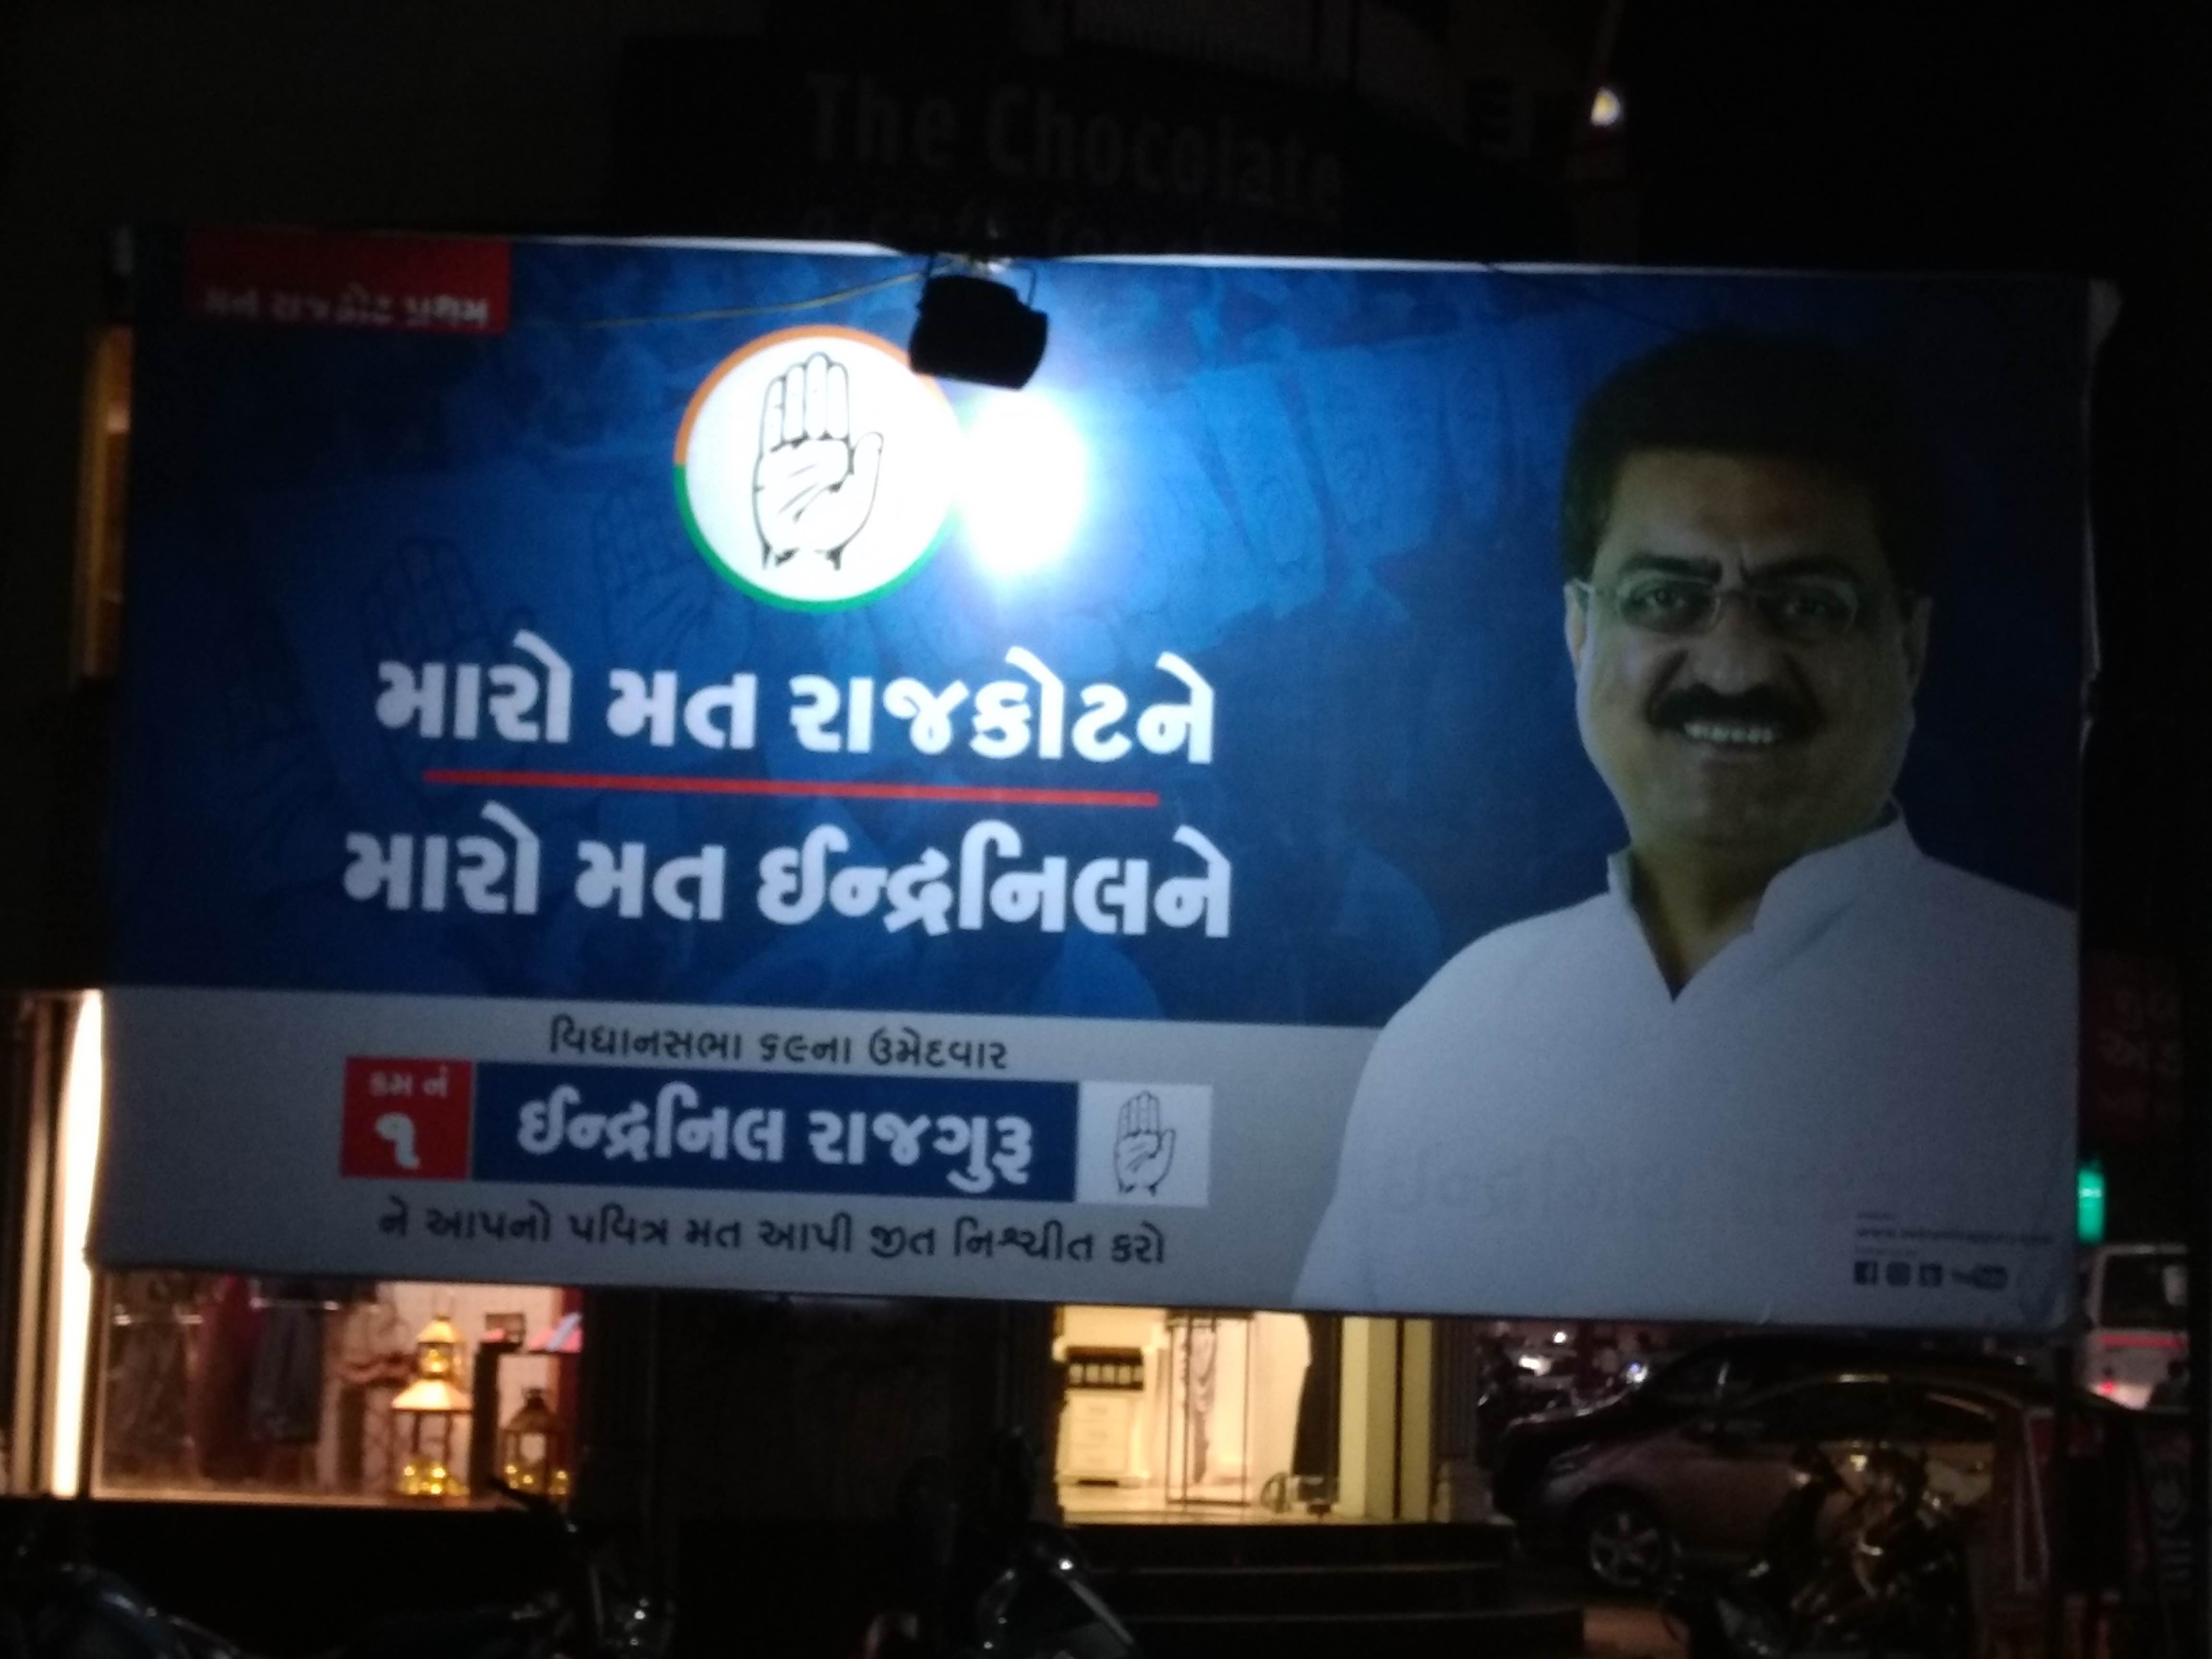 A hoarding that says 'Vote for Rajkot, vote for Indranil'. Credit: Damayantee Dhar